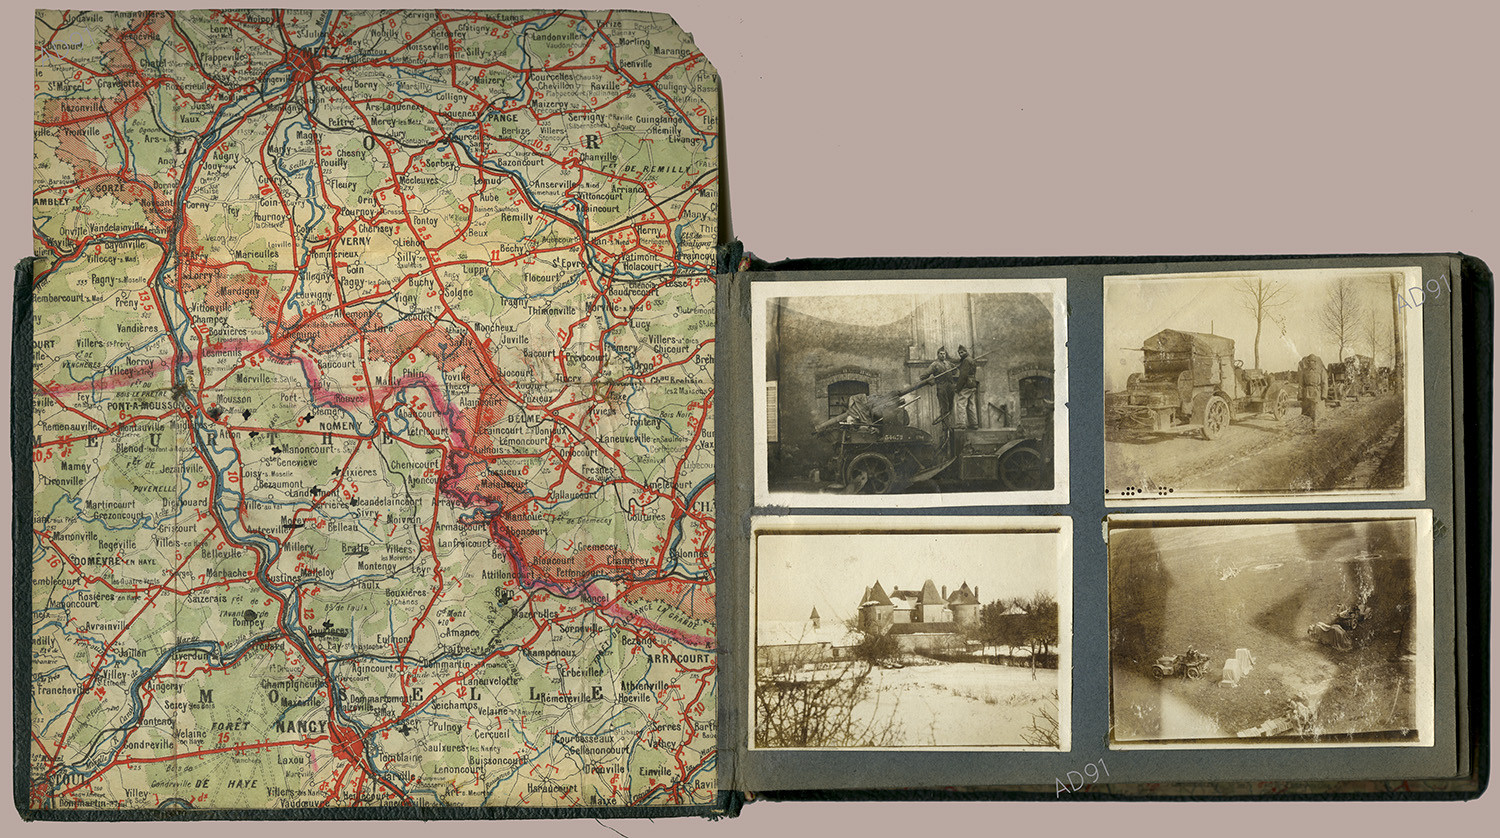 16 - Album photographique, [v.1917-1918]. (032NUM019/023)